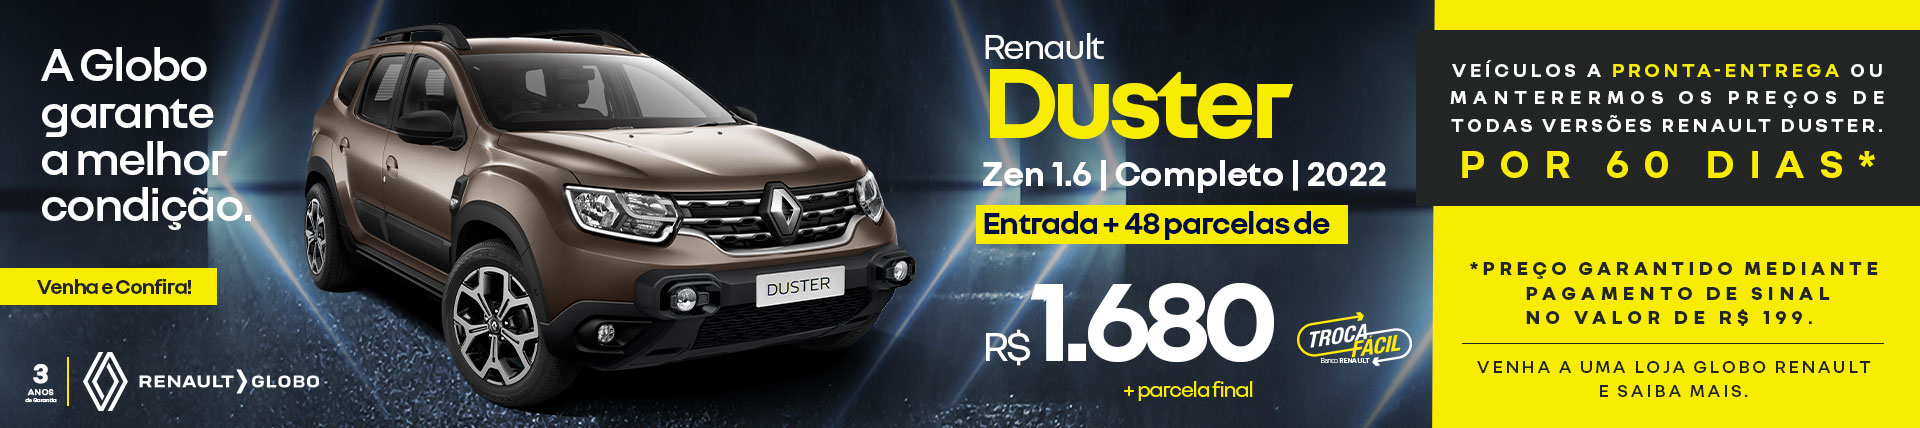 duster-10-21